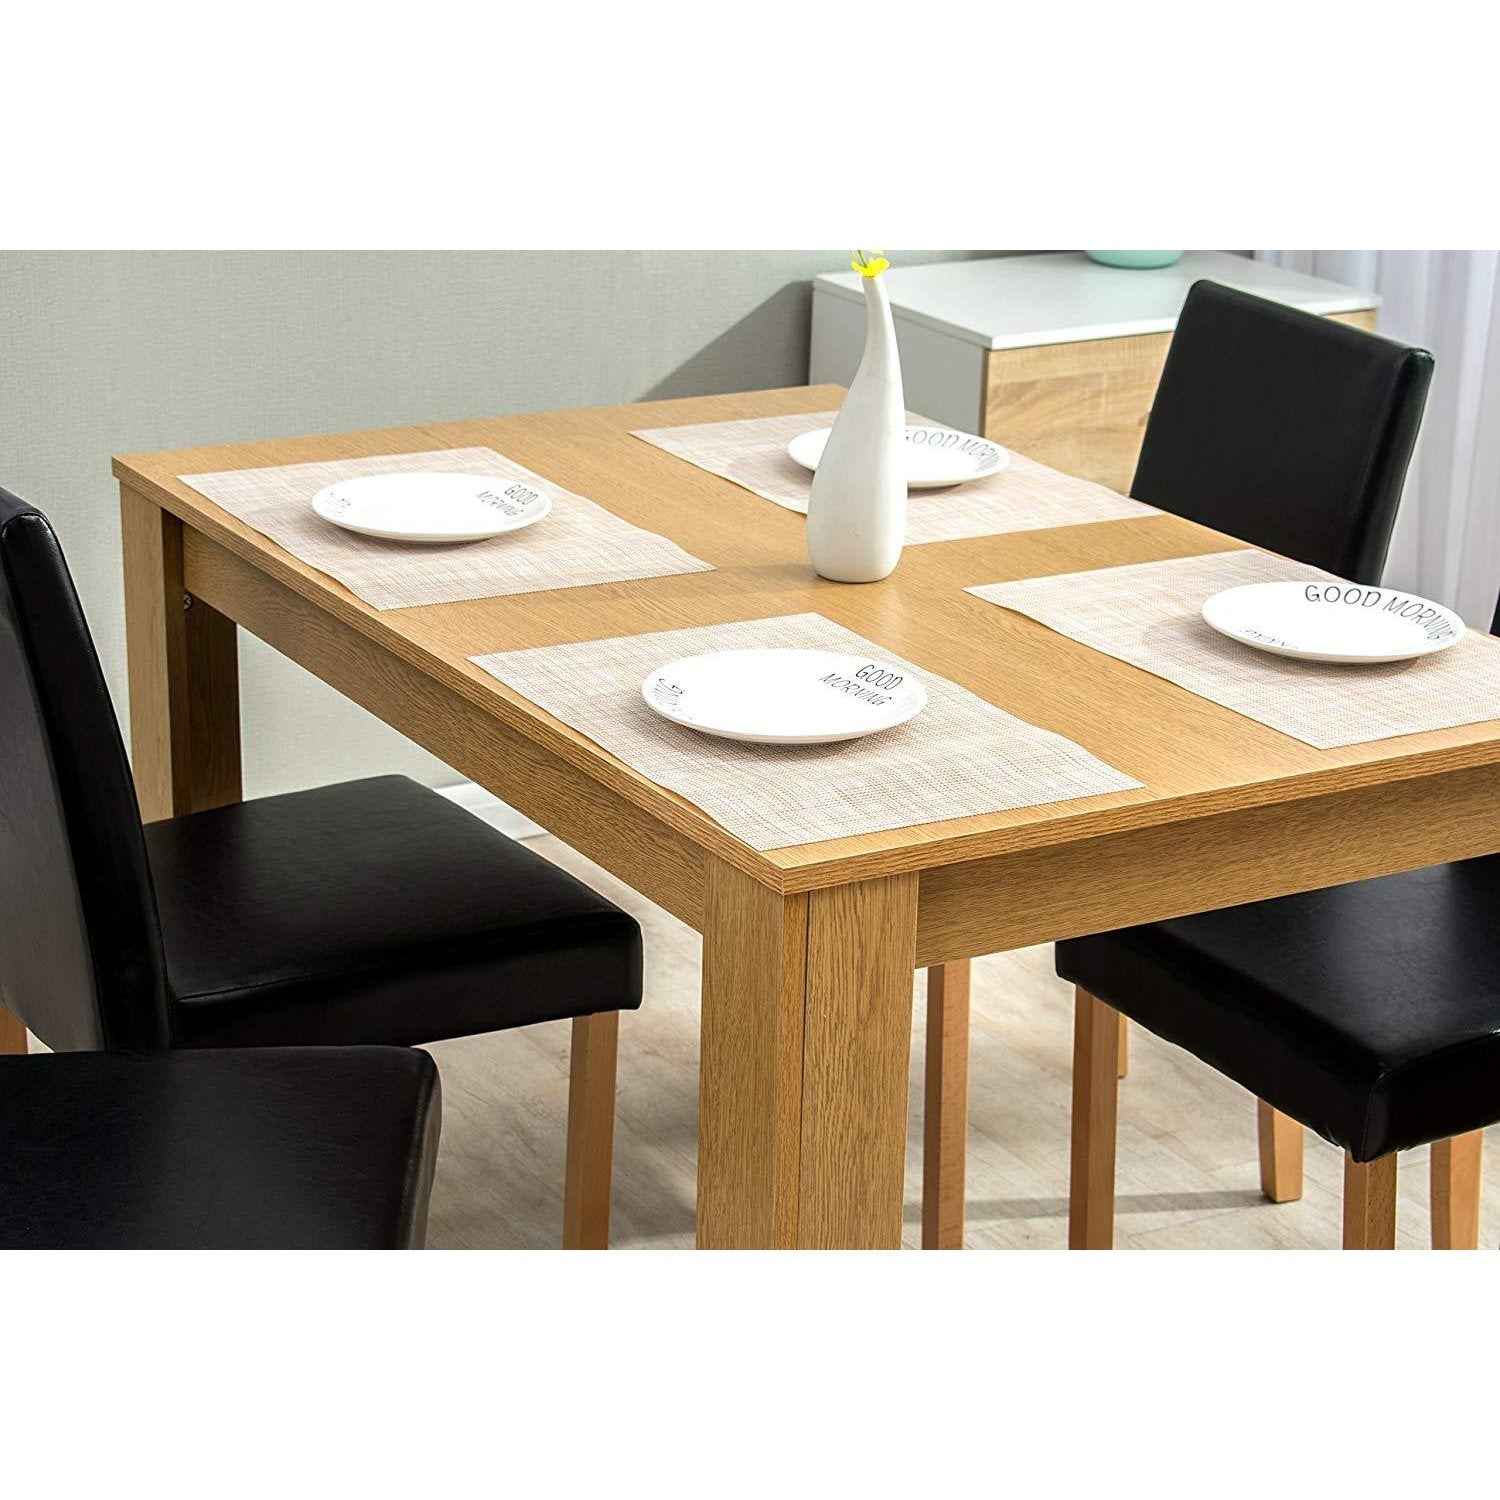 LKSJ 9 Piece Wood Dining Table Set for 9 Person Home Kitchen Table ...